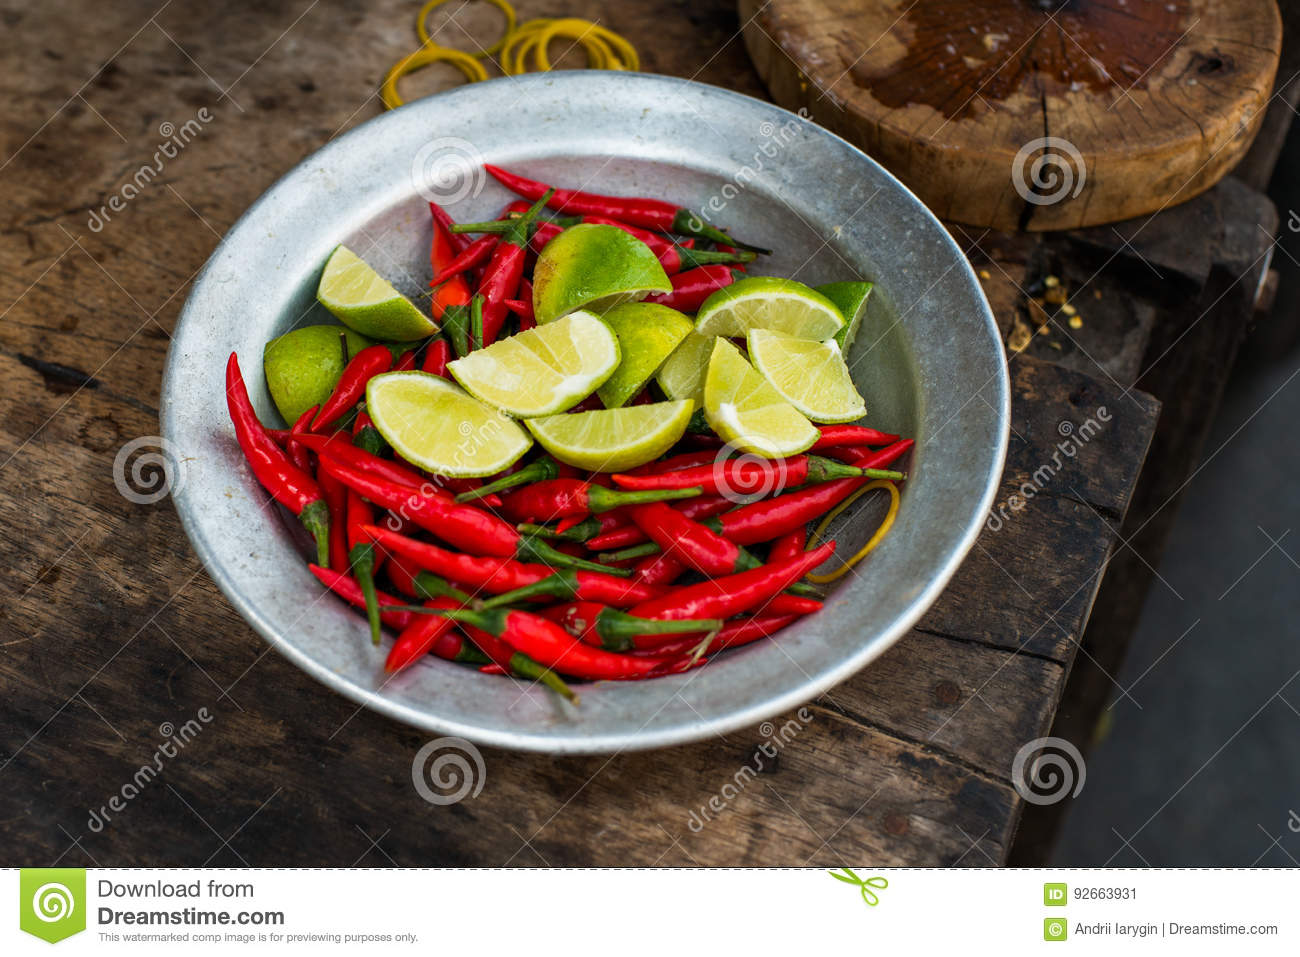 Asian lime and chili, part of Asian food culture, beautiful background with  a theme of street food in south east asia